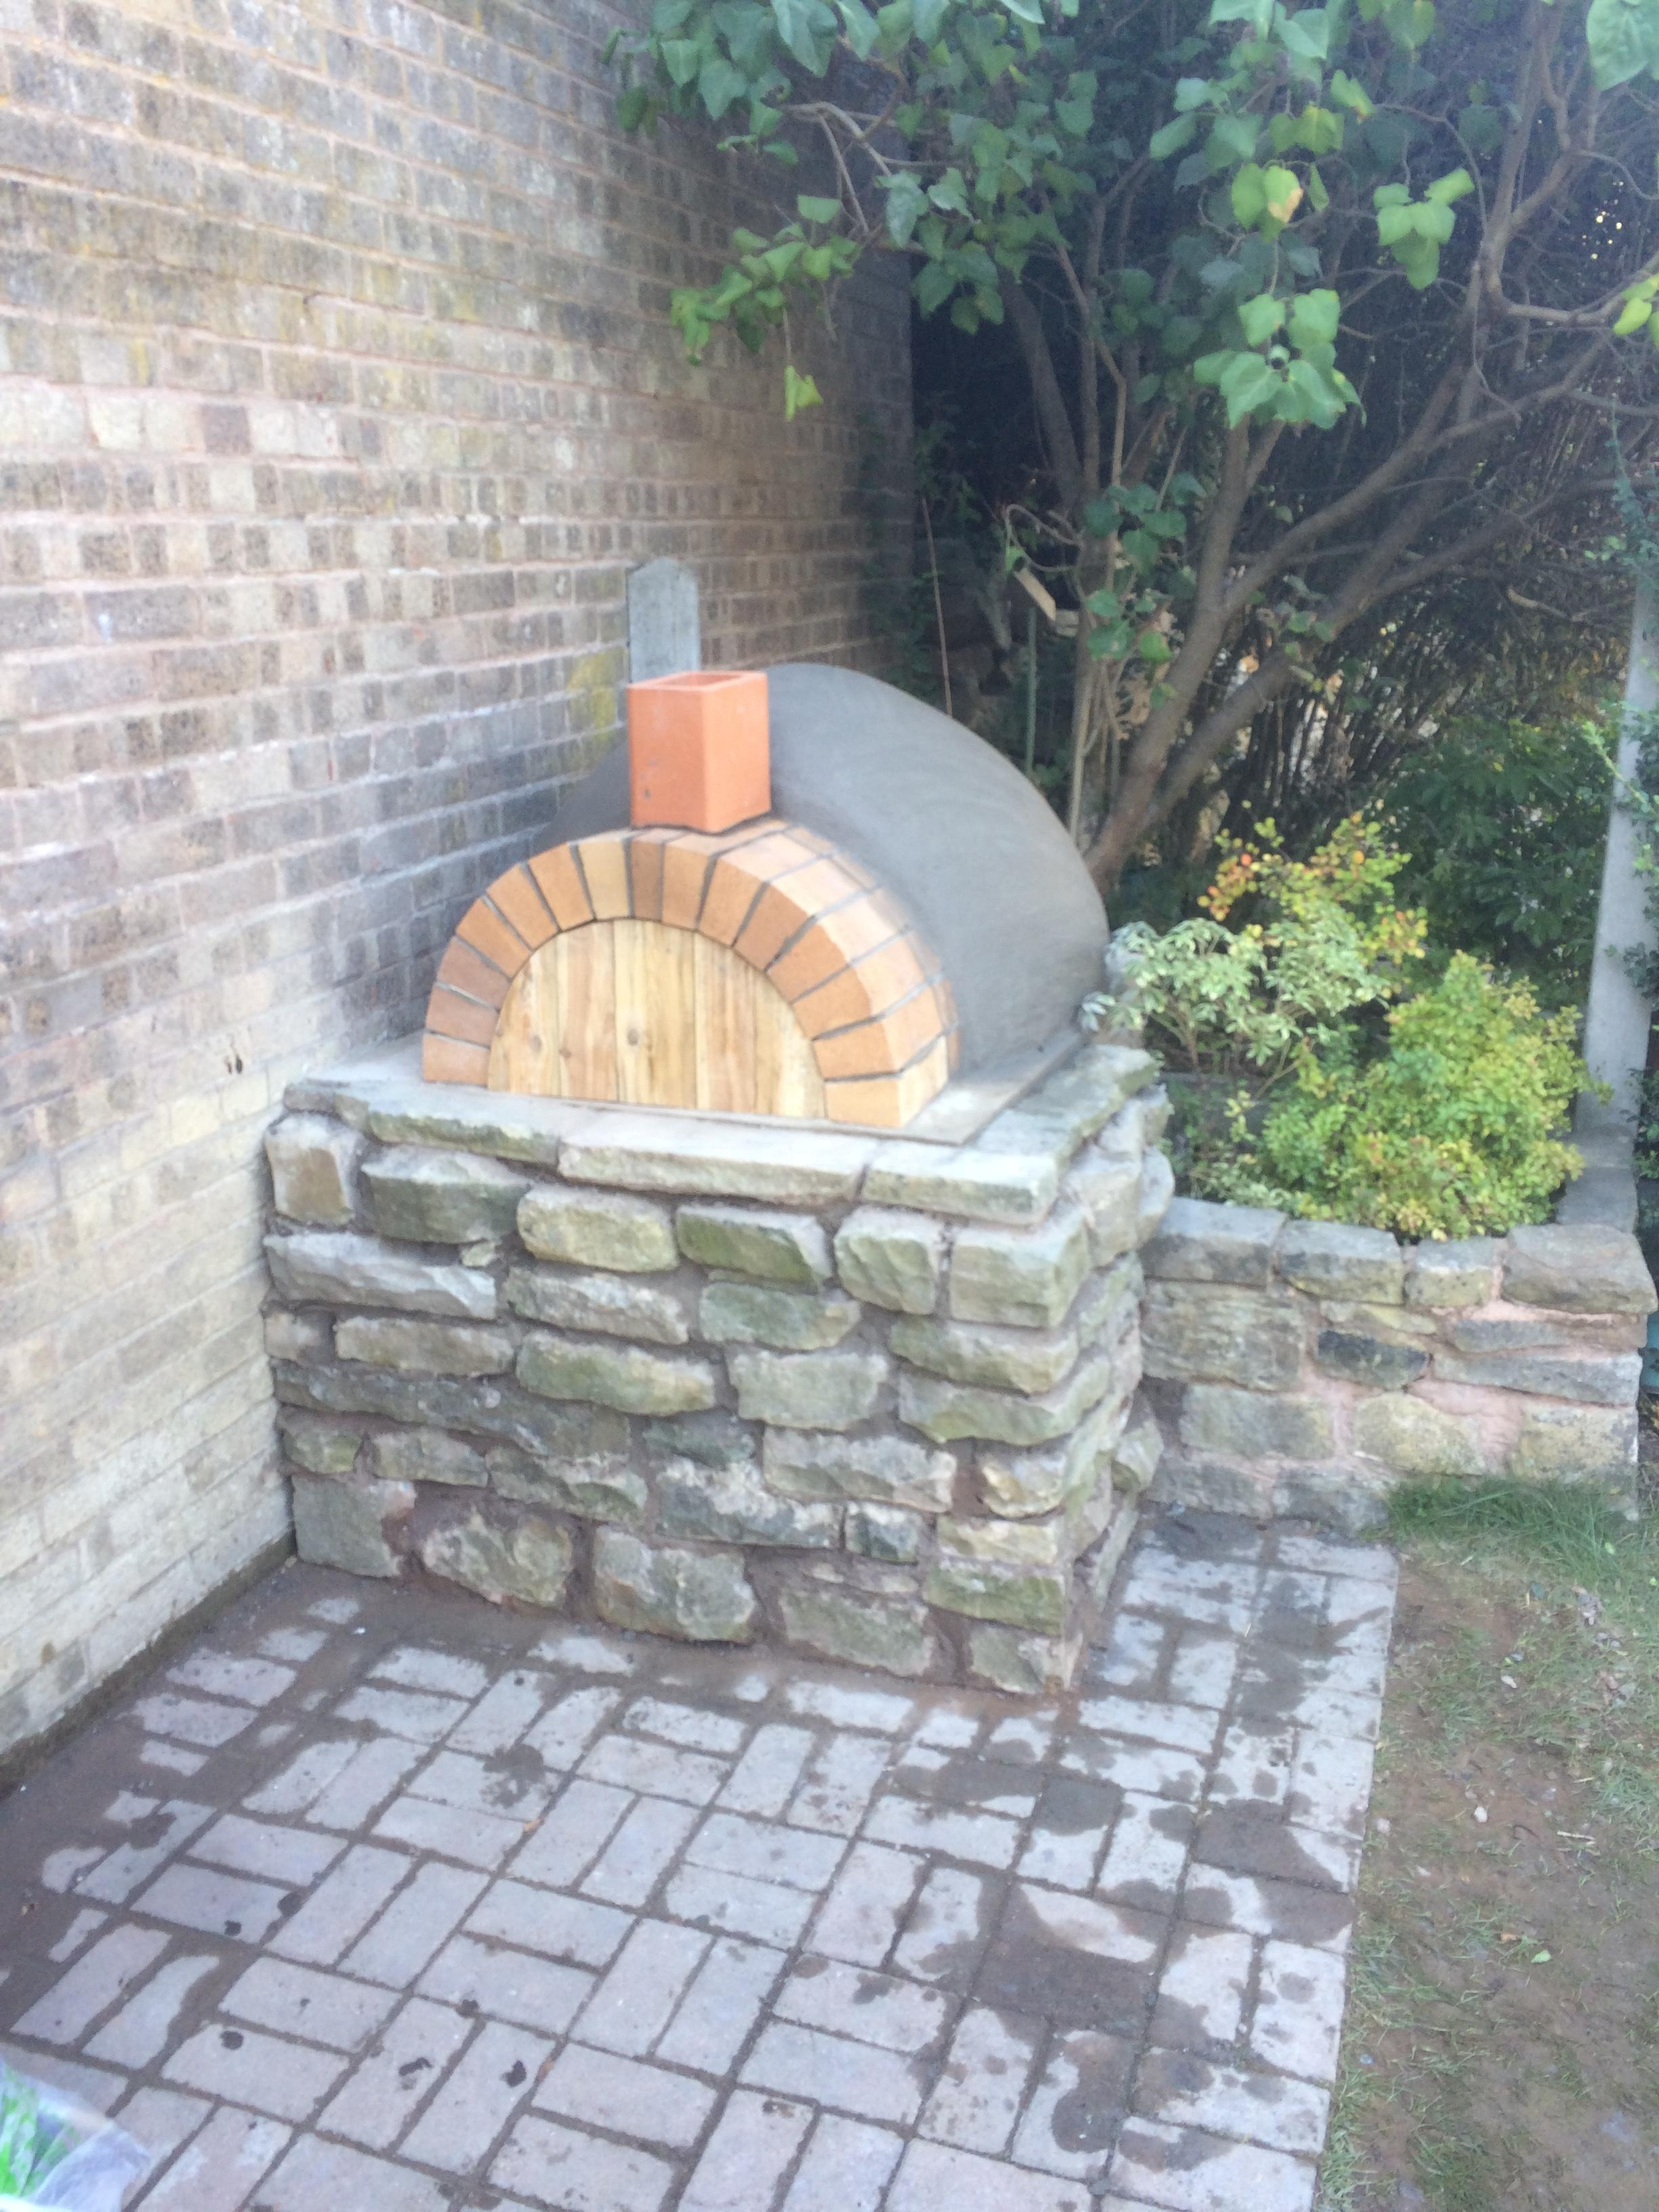 How To Make Outdoor Brick Pizza Oven | DIY Guide